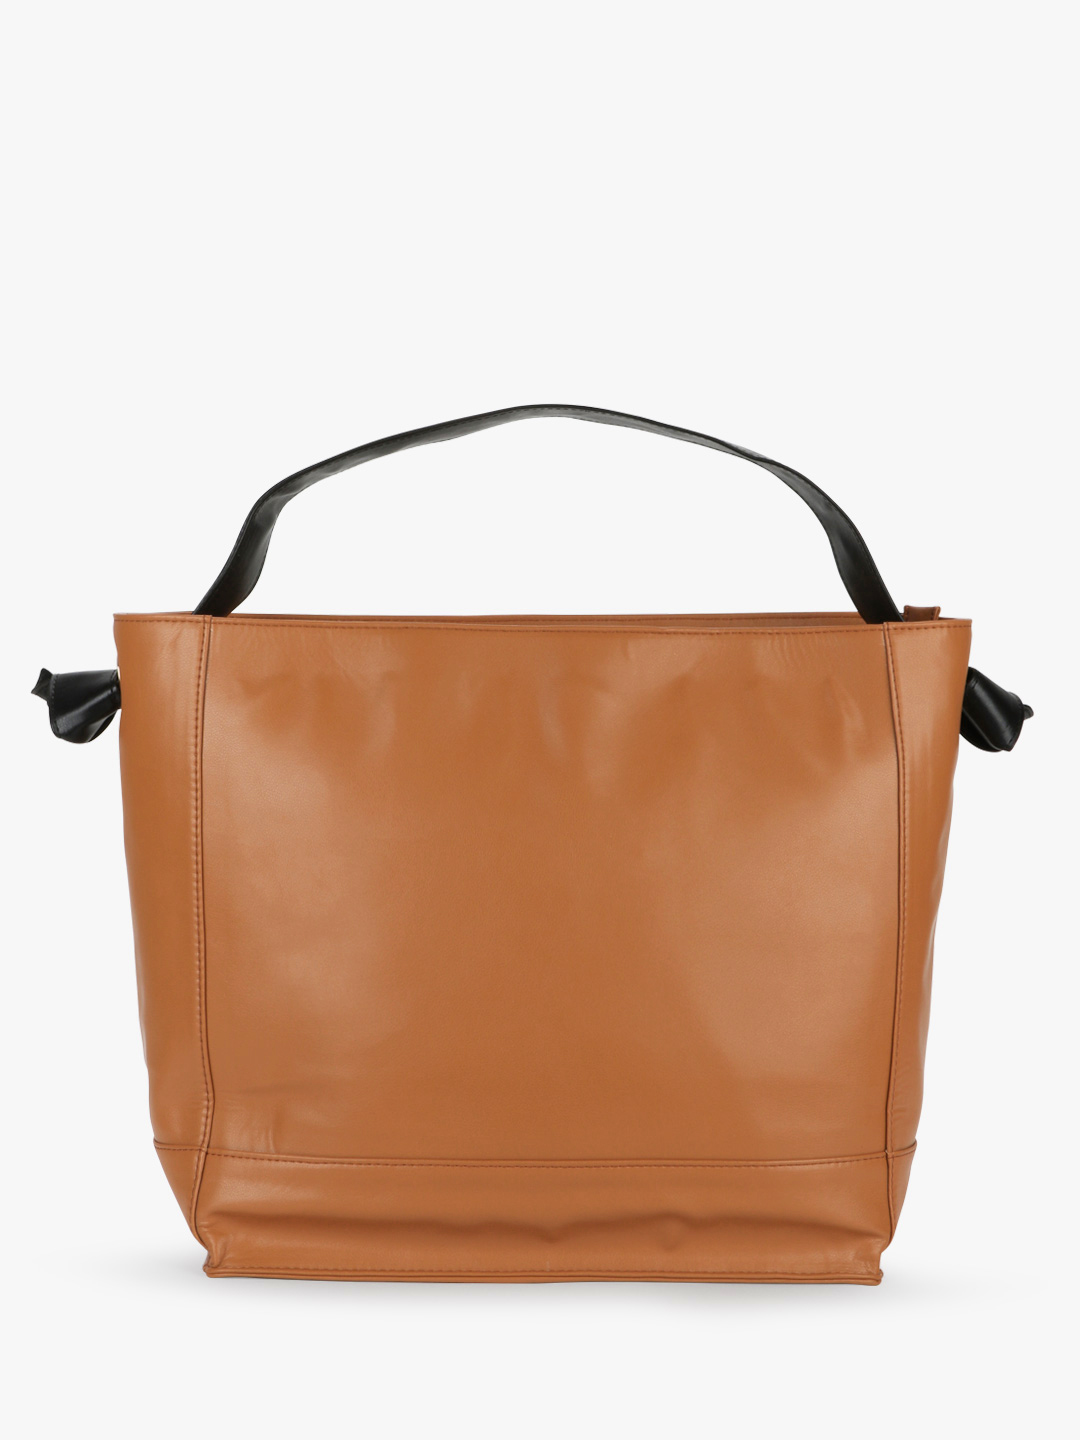 Paris Belle Tan/Black Basic Tote Bag With Knotted Strap 1